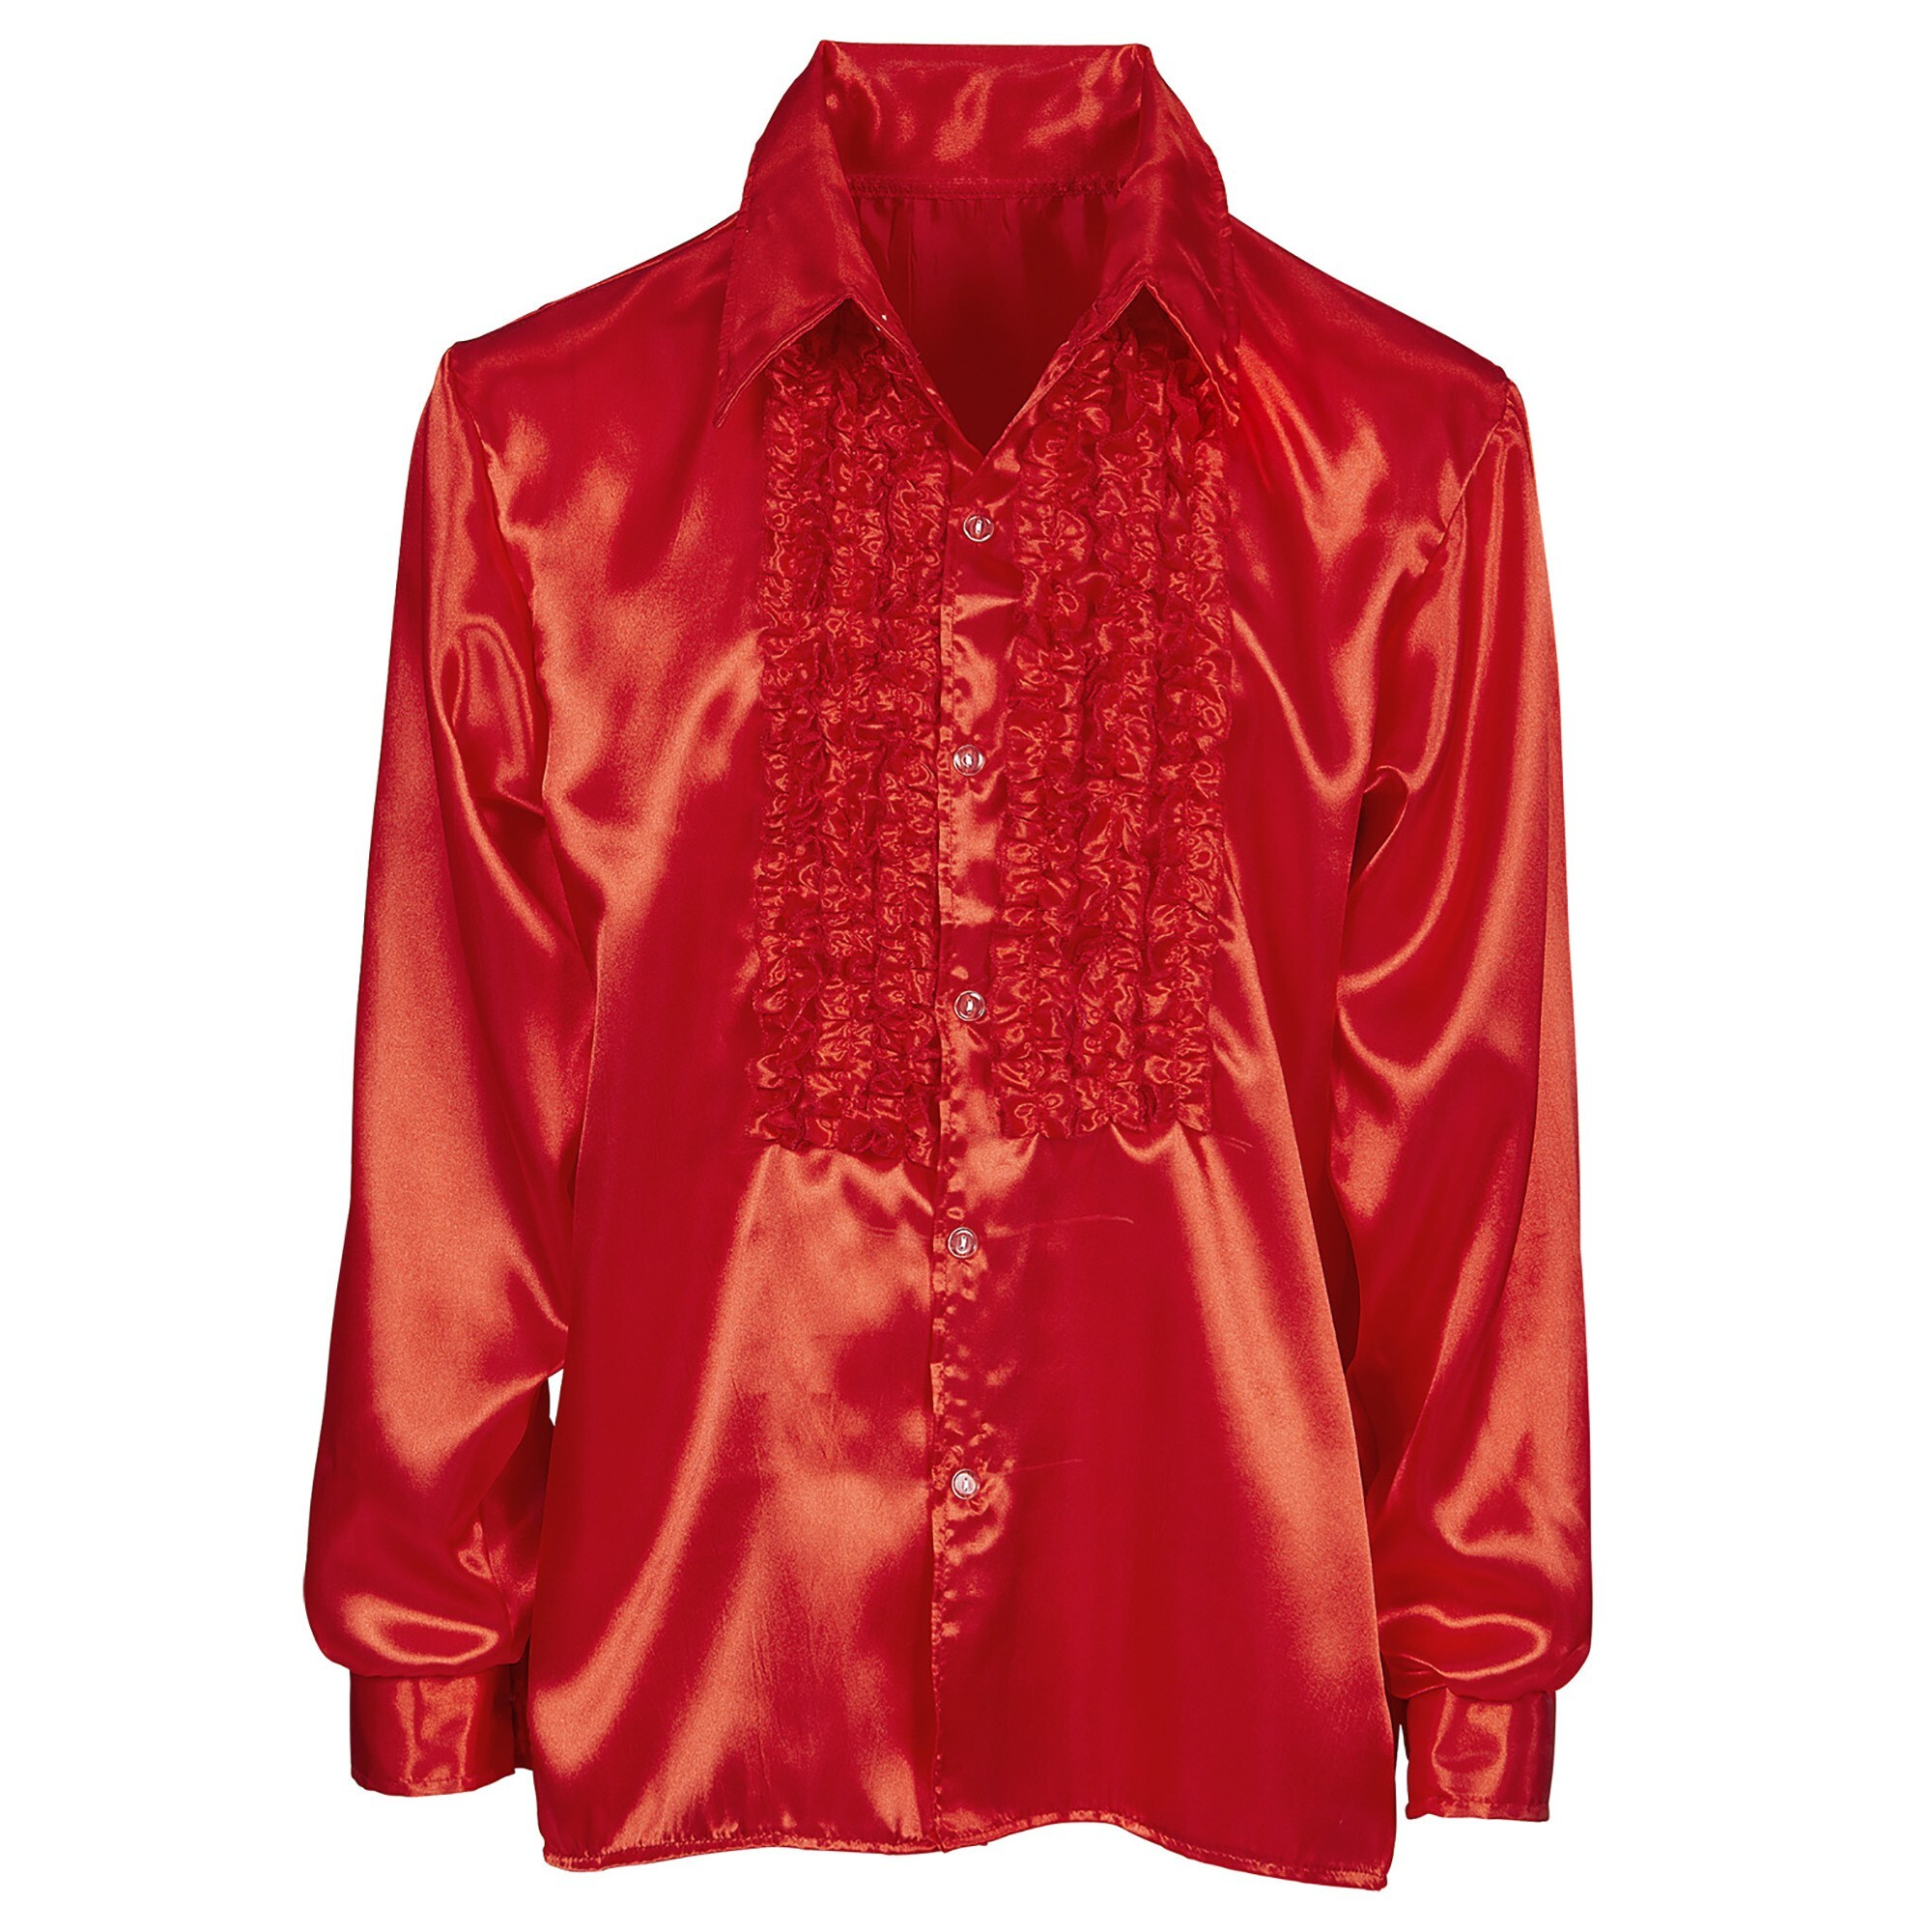 Rouche blouse rood